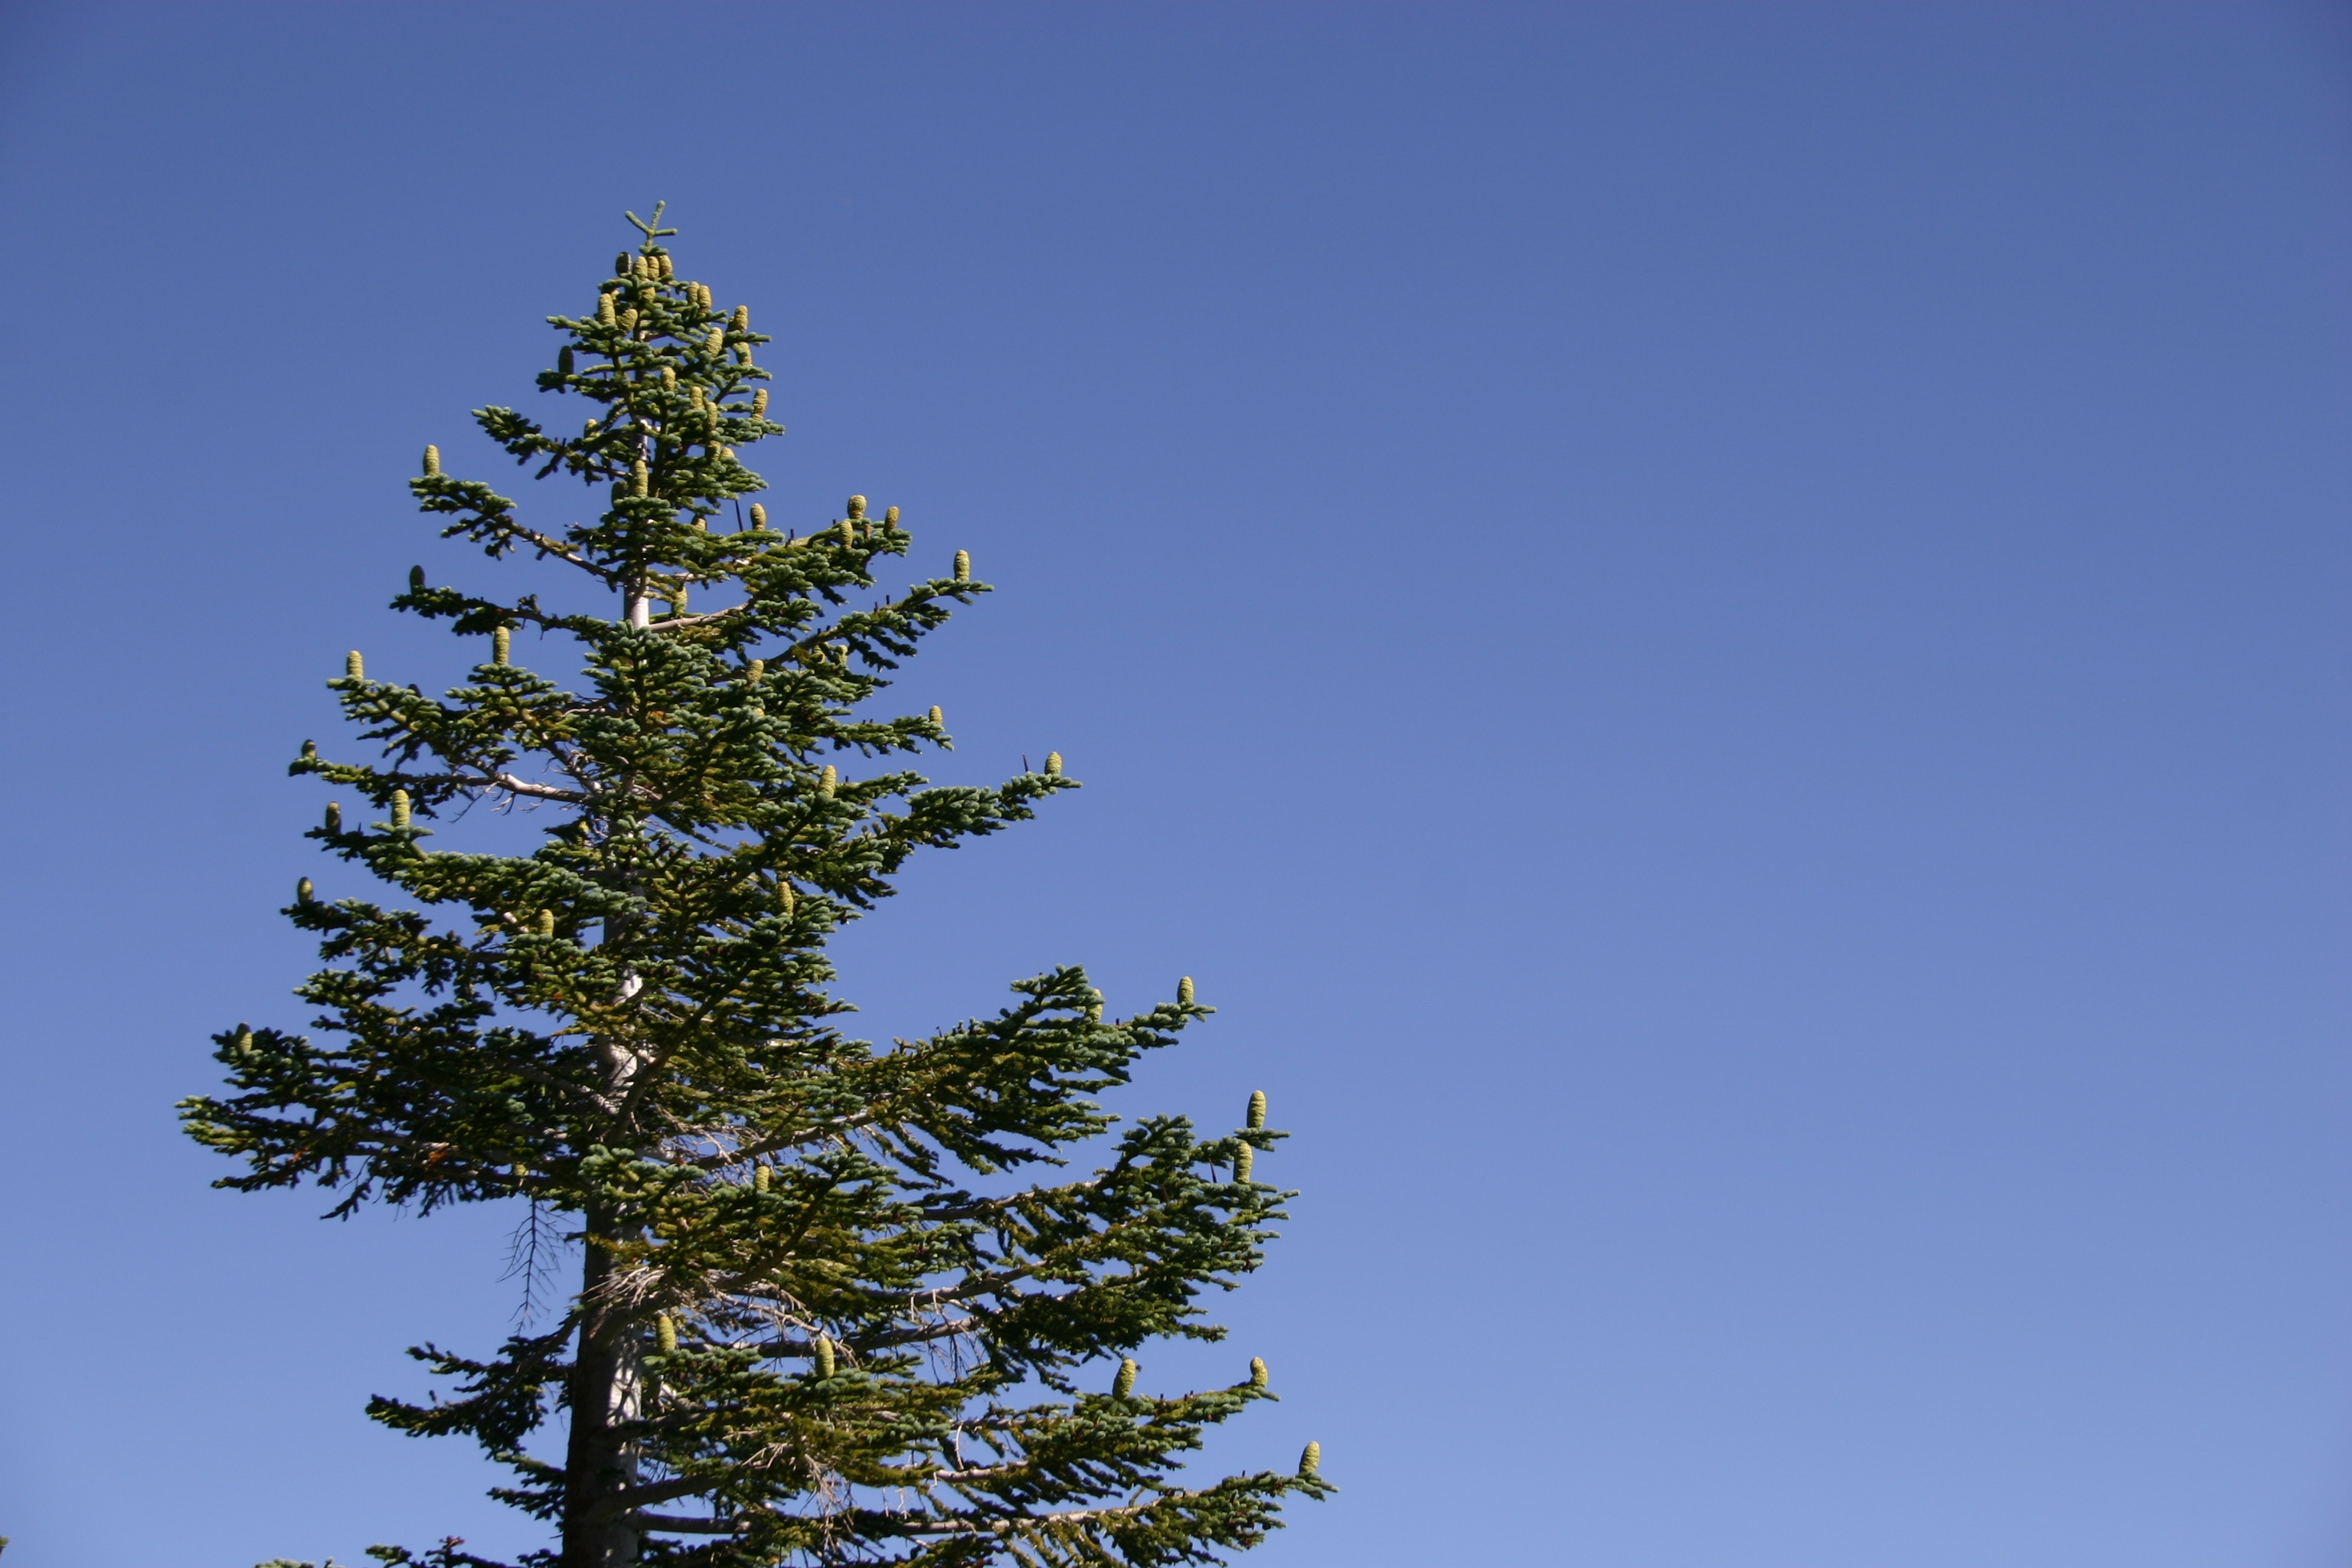 A pine tree near Mammoth Lakes. (If anyone knows the species, please let me know and I'll add the info!)